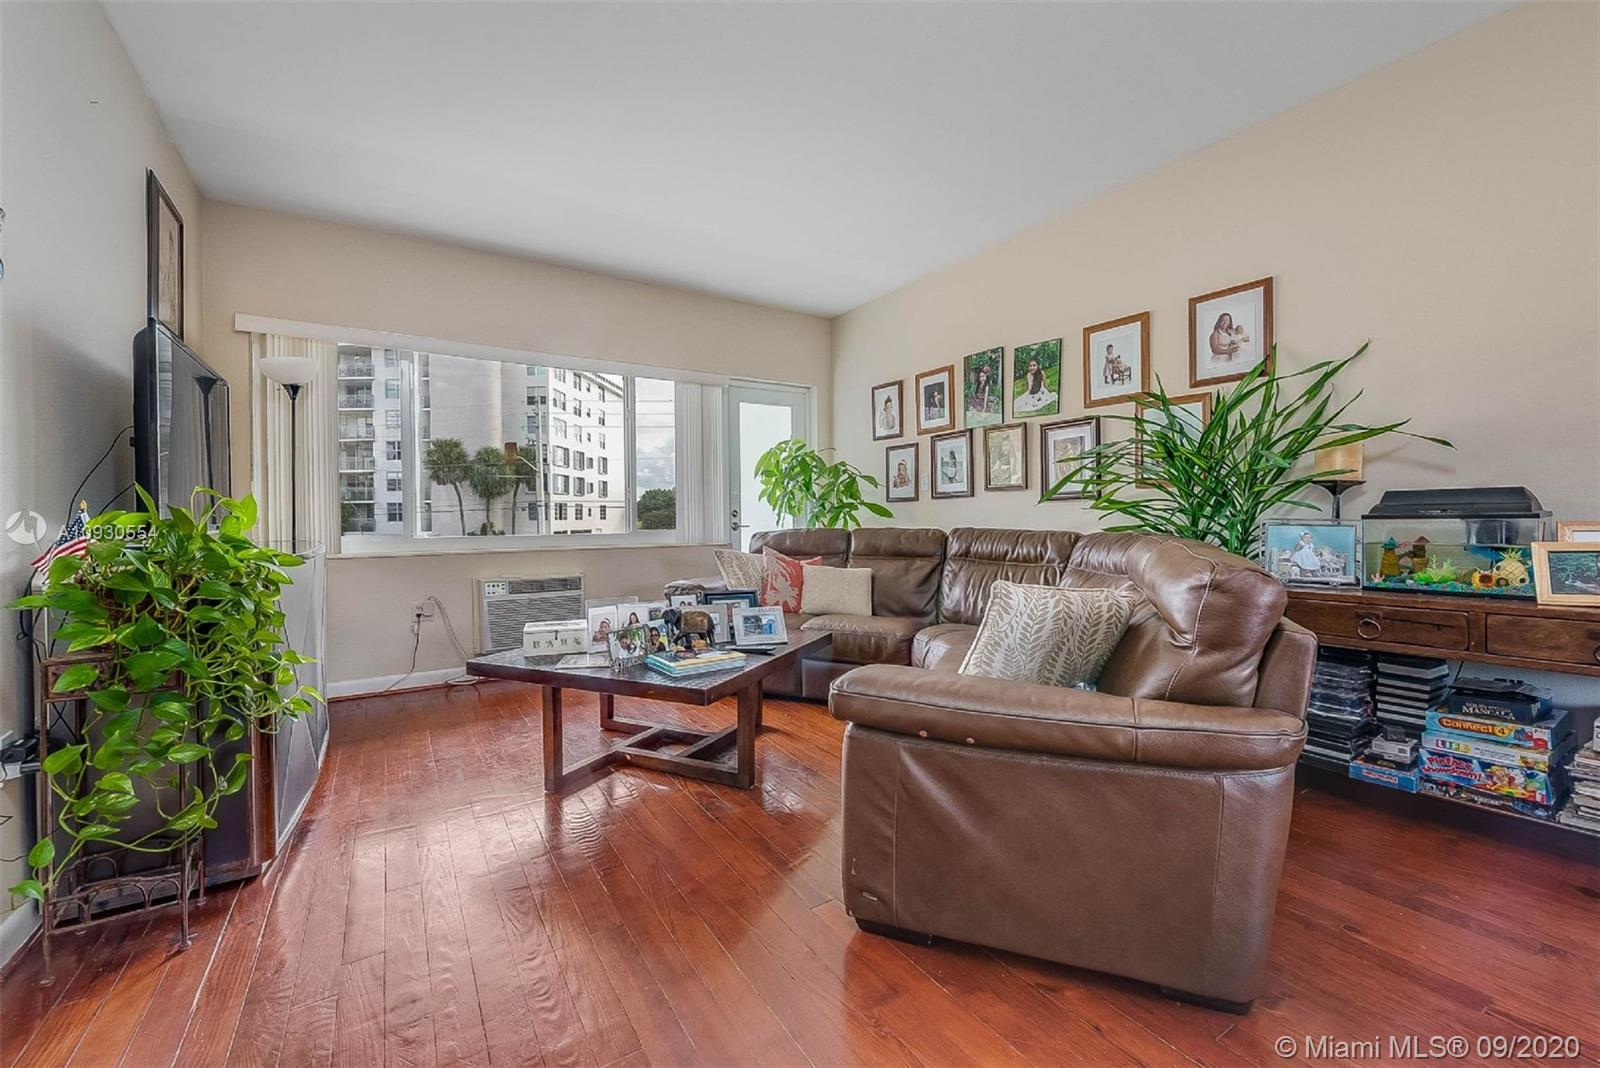 Great 1/1 Apartment in bay harbor. Low maintenance $371. Two assigned parking. Impact windows and doors. Recently remodeled with new kitchen, appliances, AC and bathroom. Apartment has plenty of storage, two walking closets and one lining closet. Walking distance to top A+ K8 school, Bal Harbor shops, beaches, beautiful parks, restaurants .Share Storage room (for bike or other non-flammables).laundry on site. Maintenance fee includes water, garbage, Insurance, common areas. Pets are allowed.